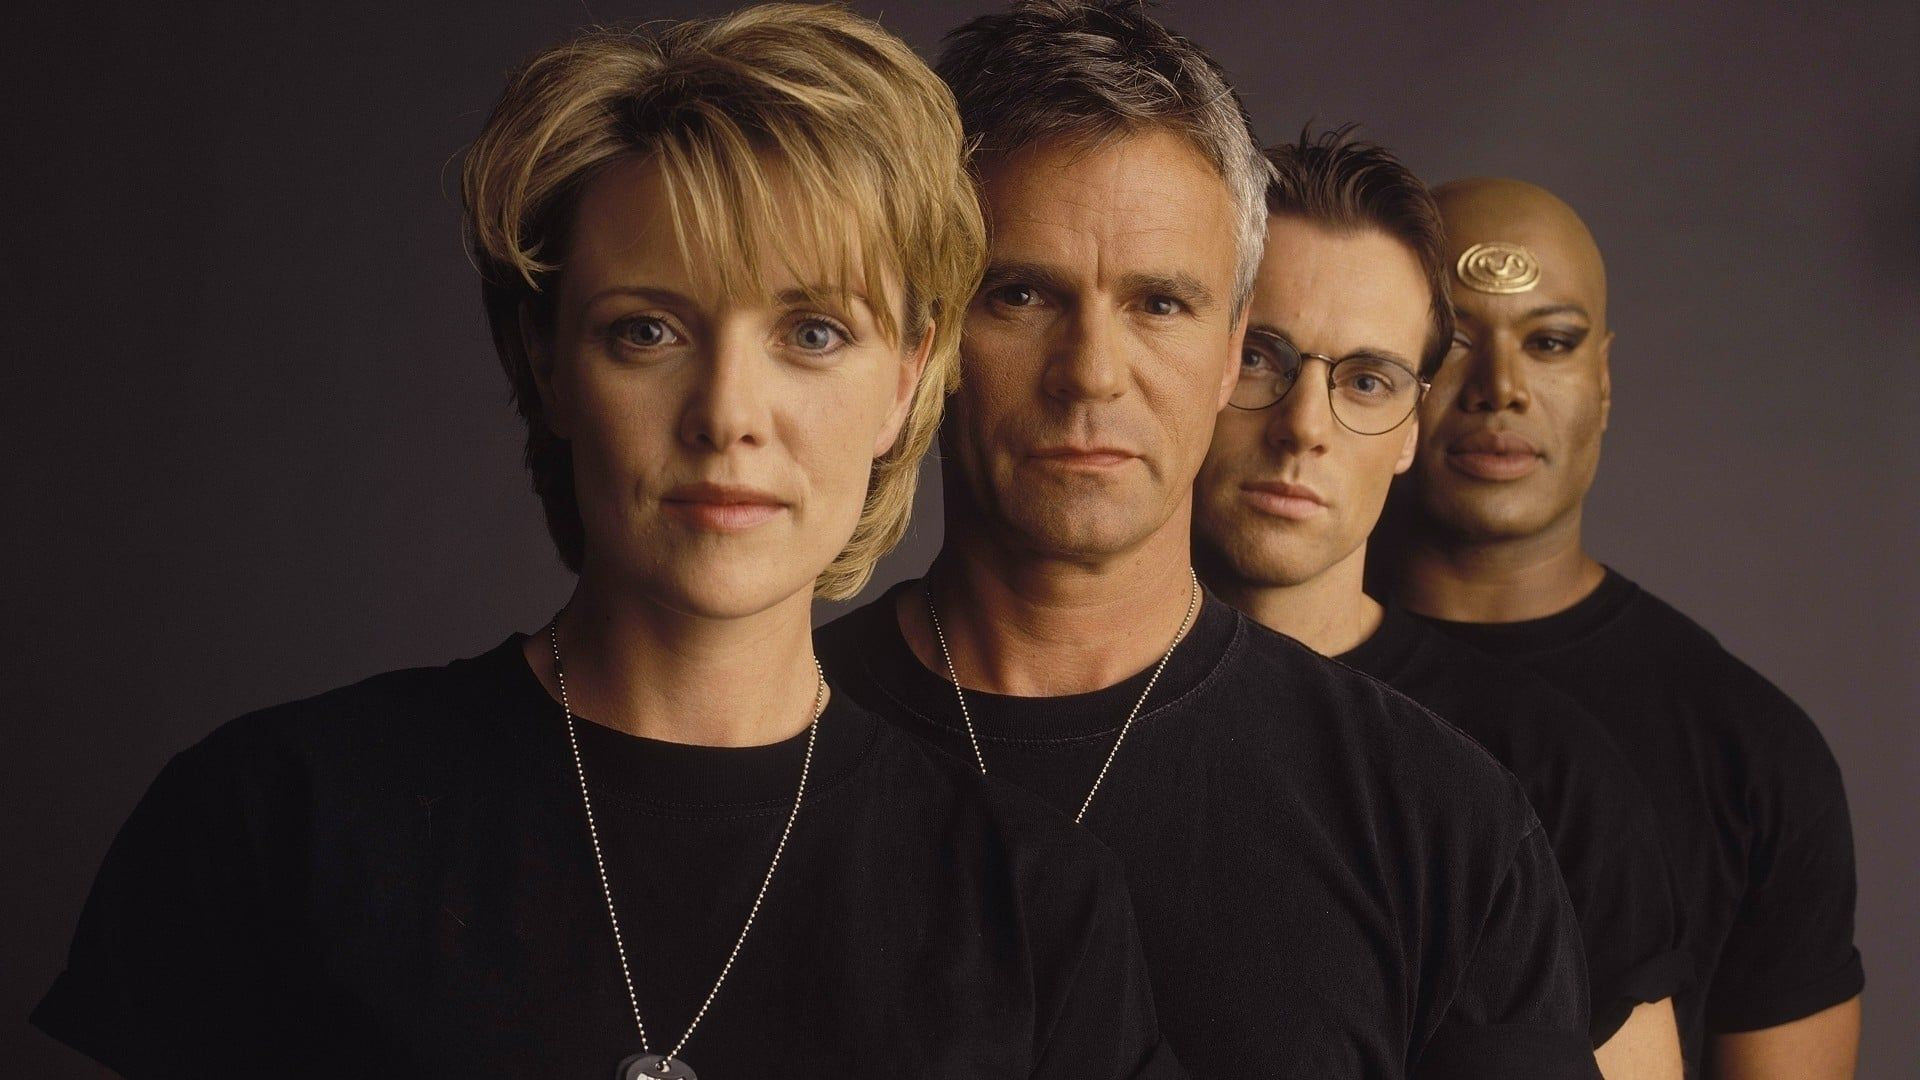 Amanda Tapping X Files stargate sg-1 - watch episodes on prime video, hulu, and